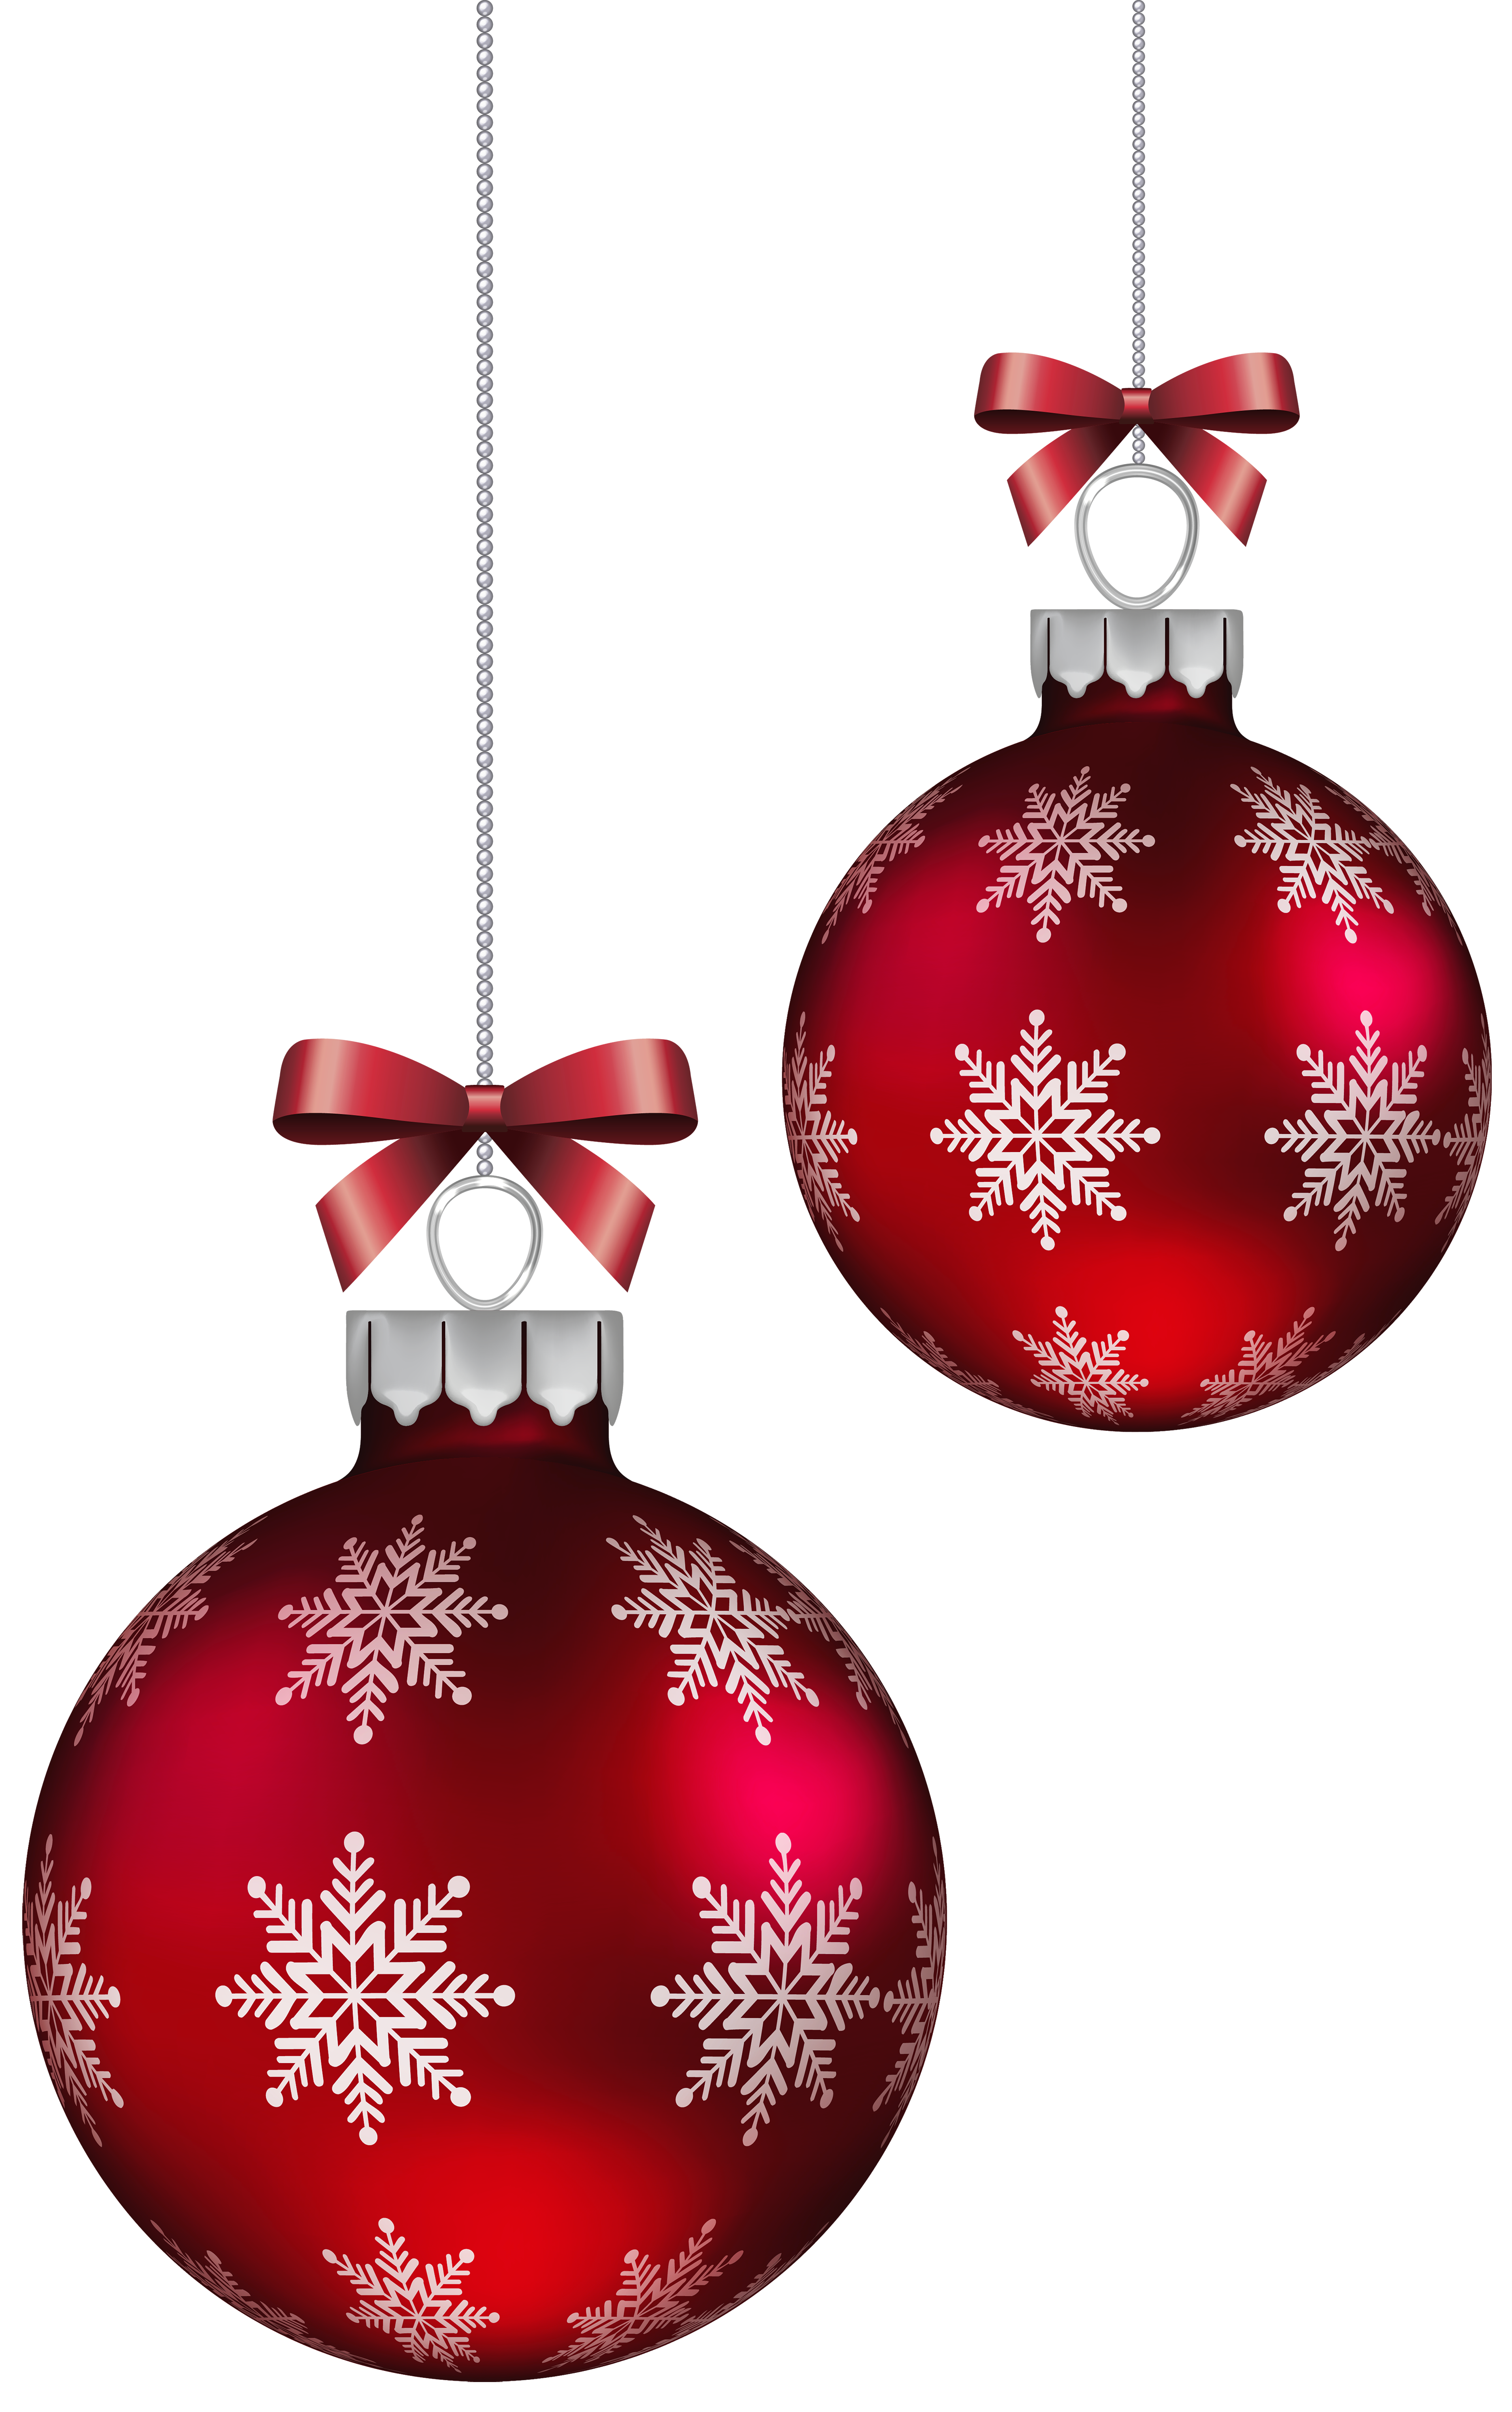 Red Christmas Balls Png, png collections at sccpre.cat.